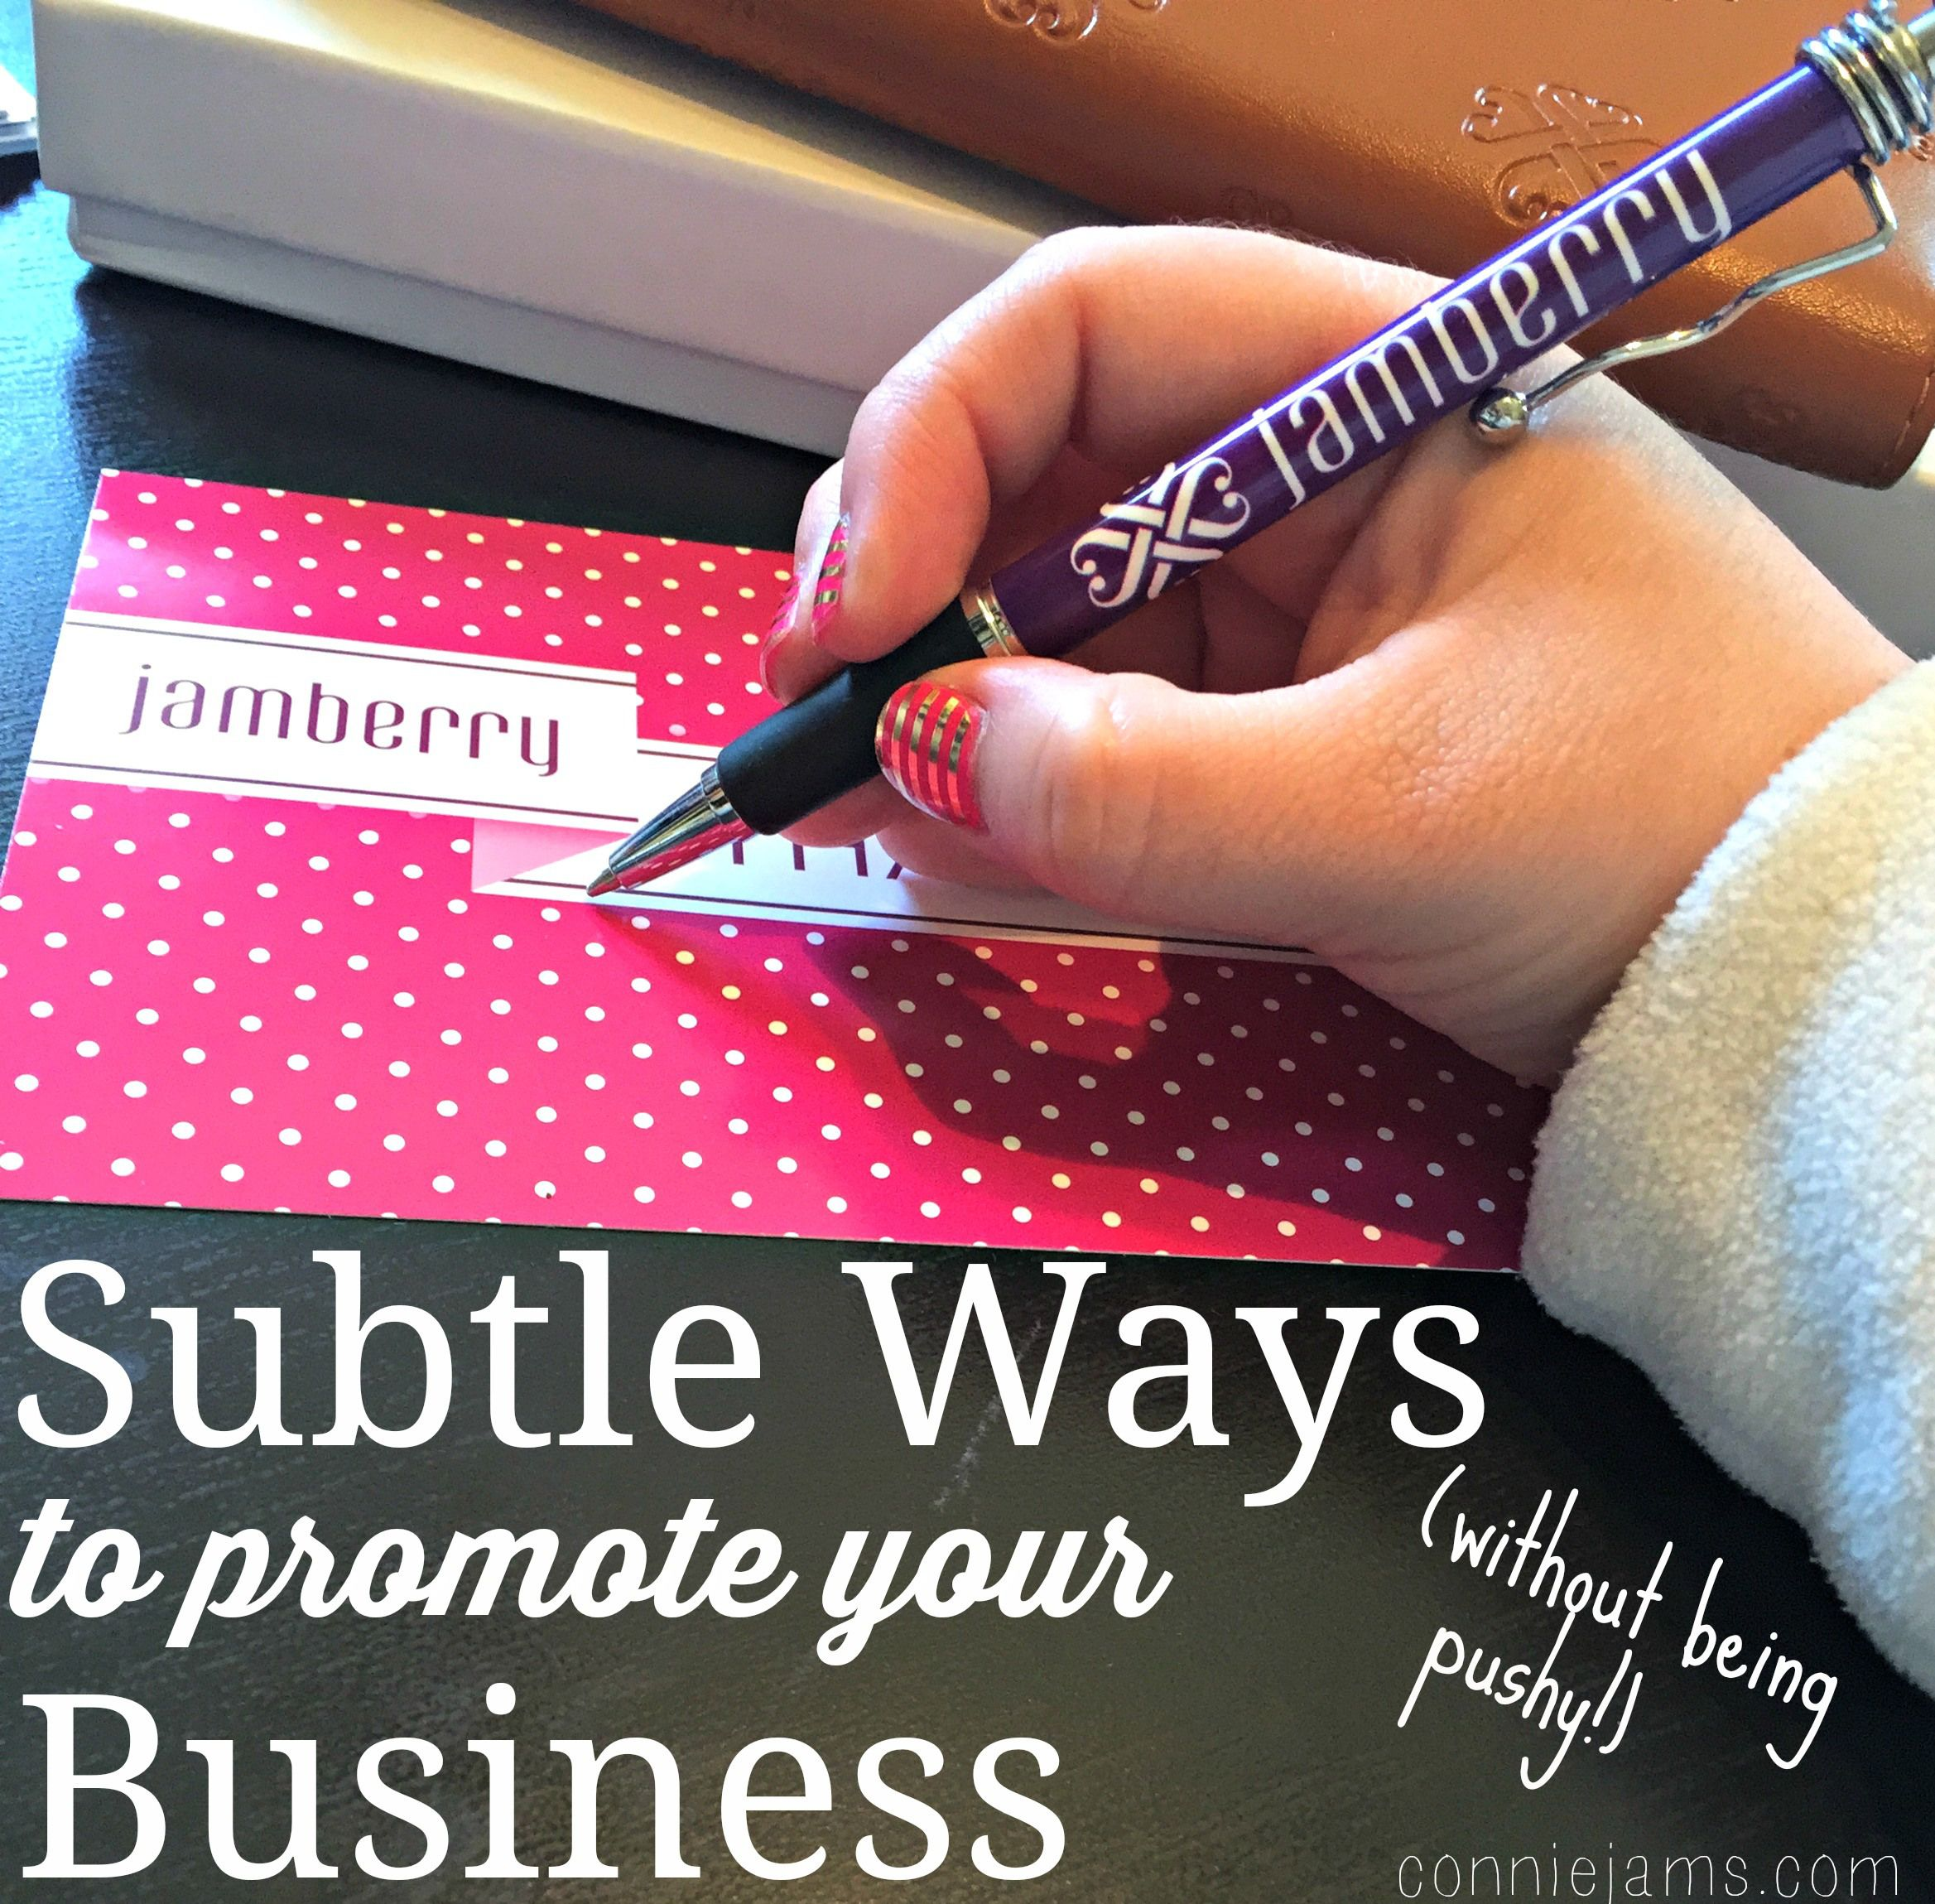 subtle ways to promote business | Jamberry | Pinterest | Jamberry ...